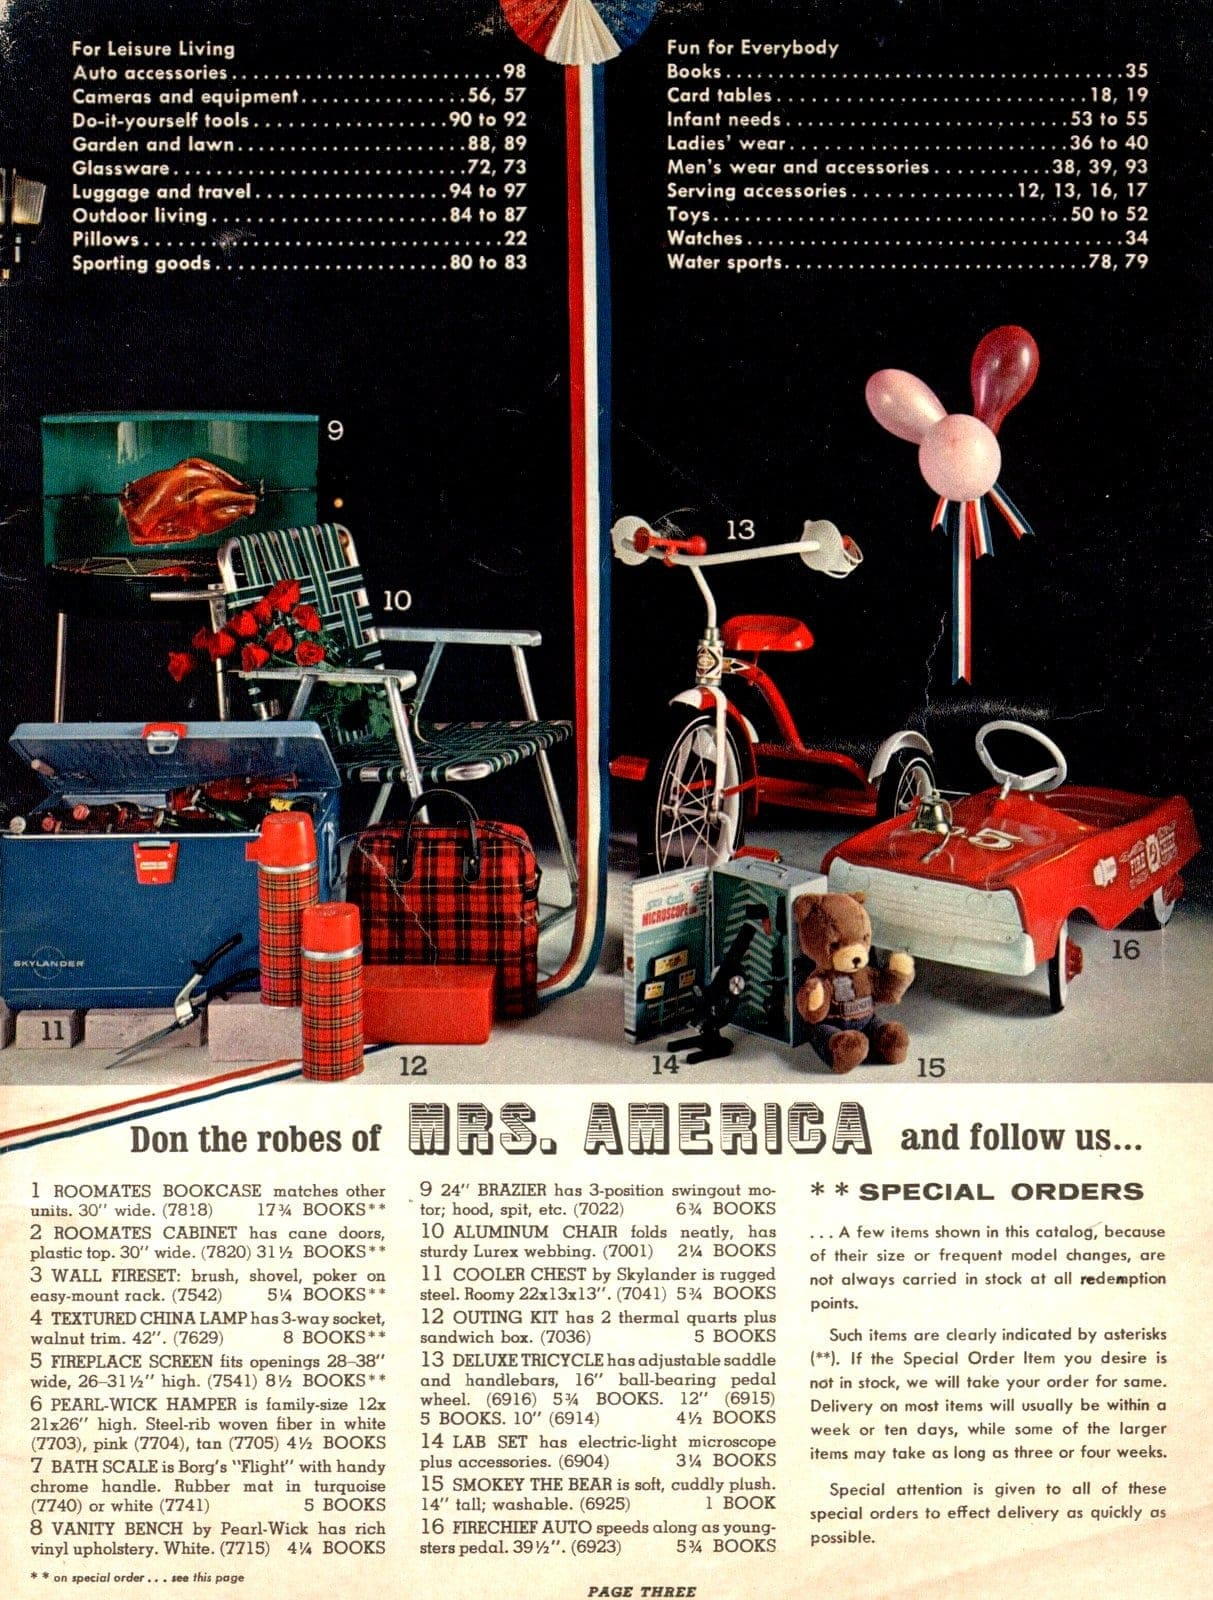 Tricycles, toy cars, chest coolers, thermoses, lawn chairs and more for vintage leisure living